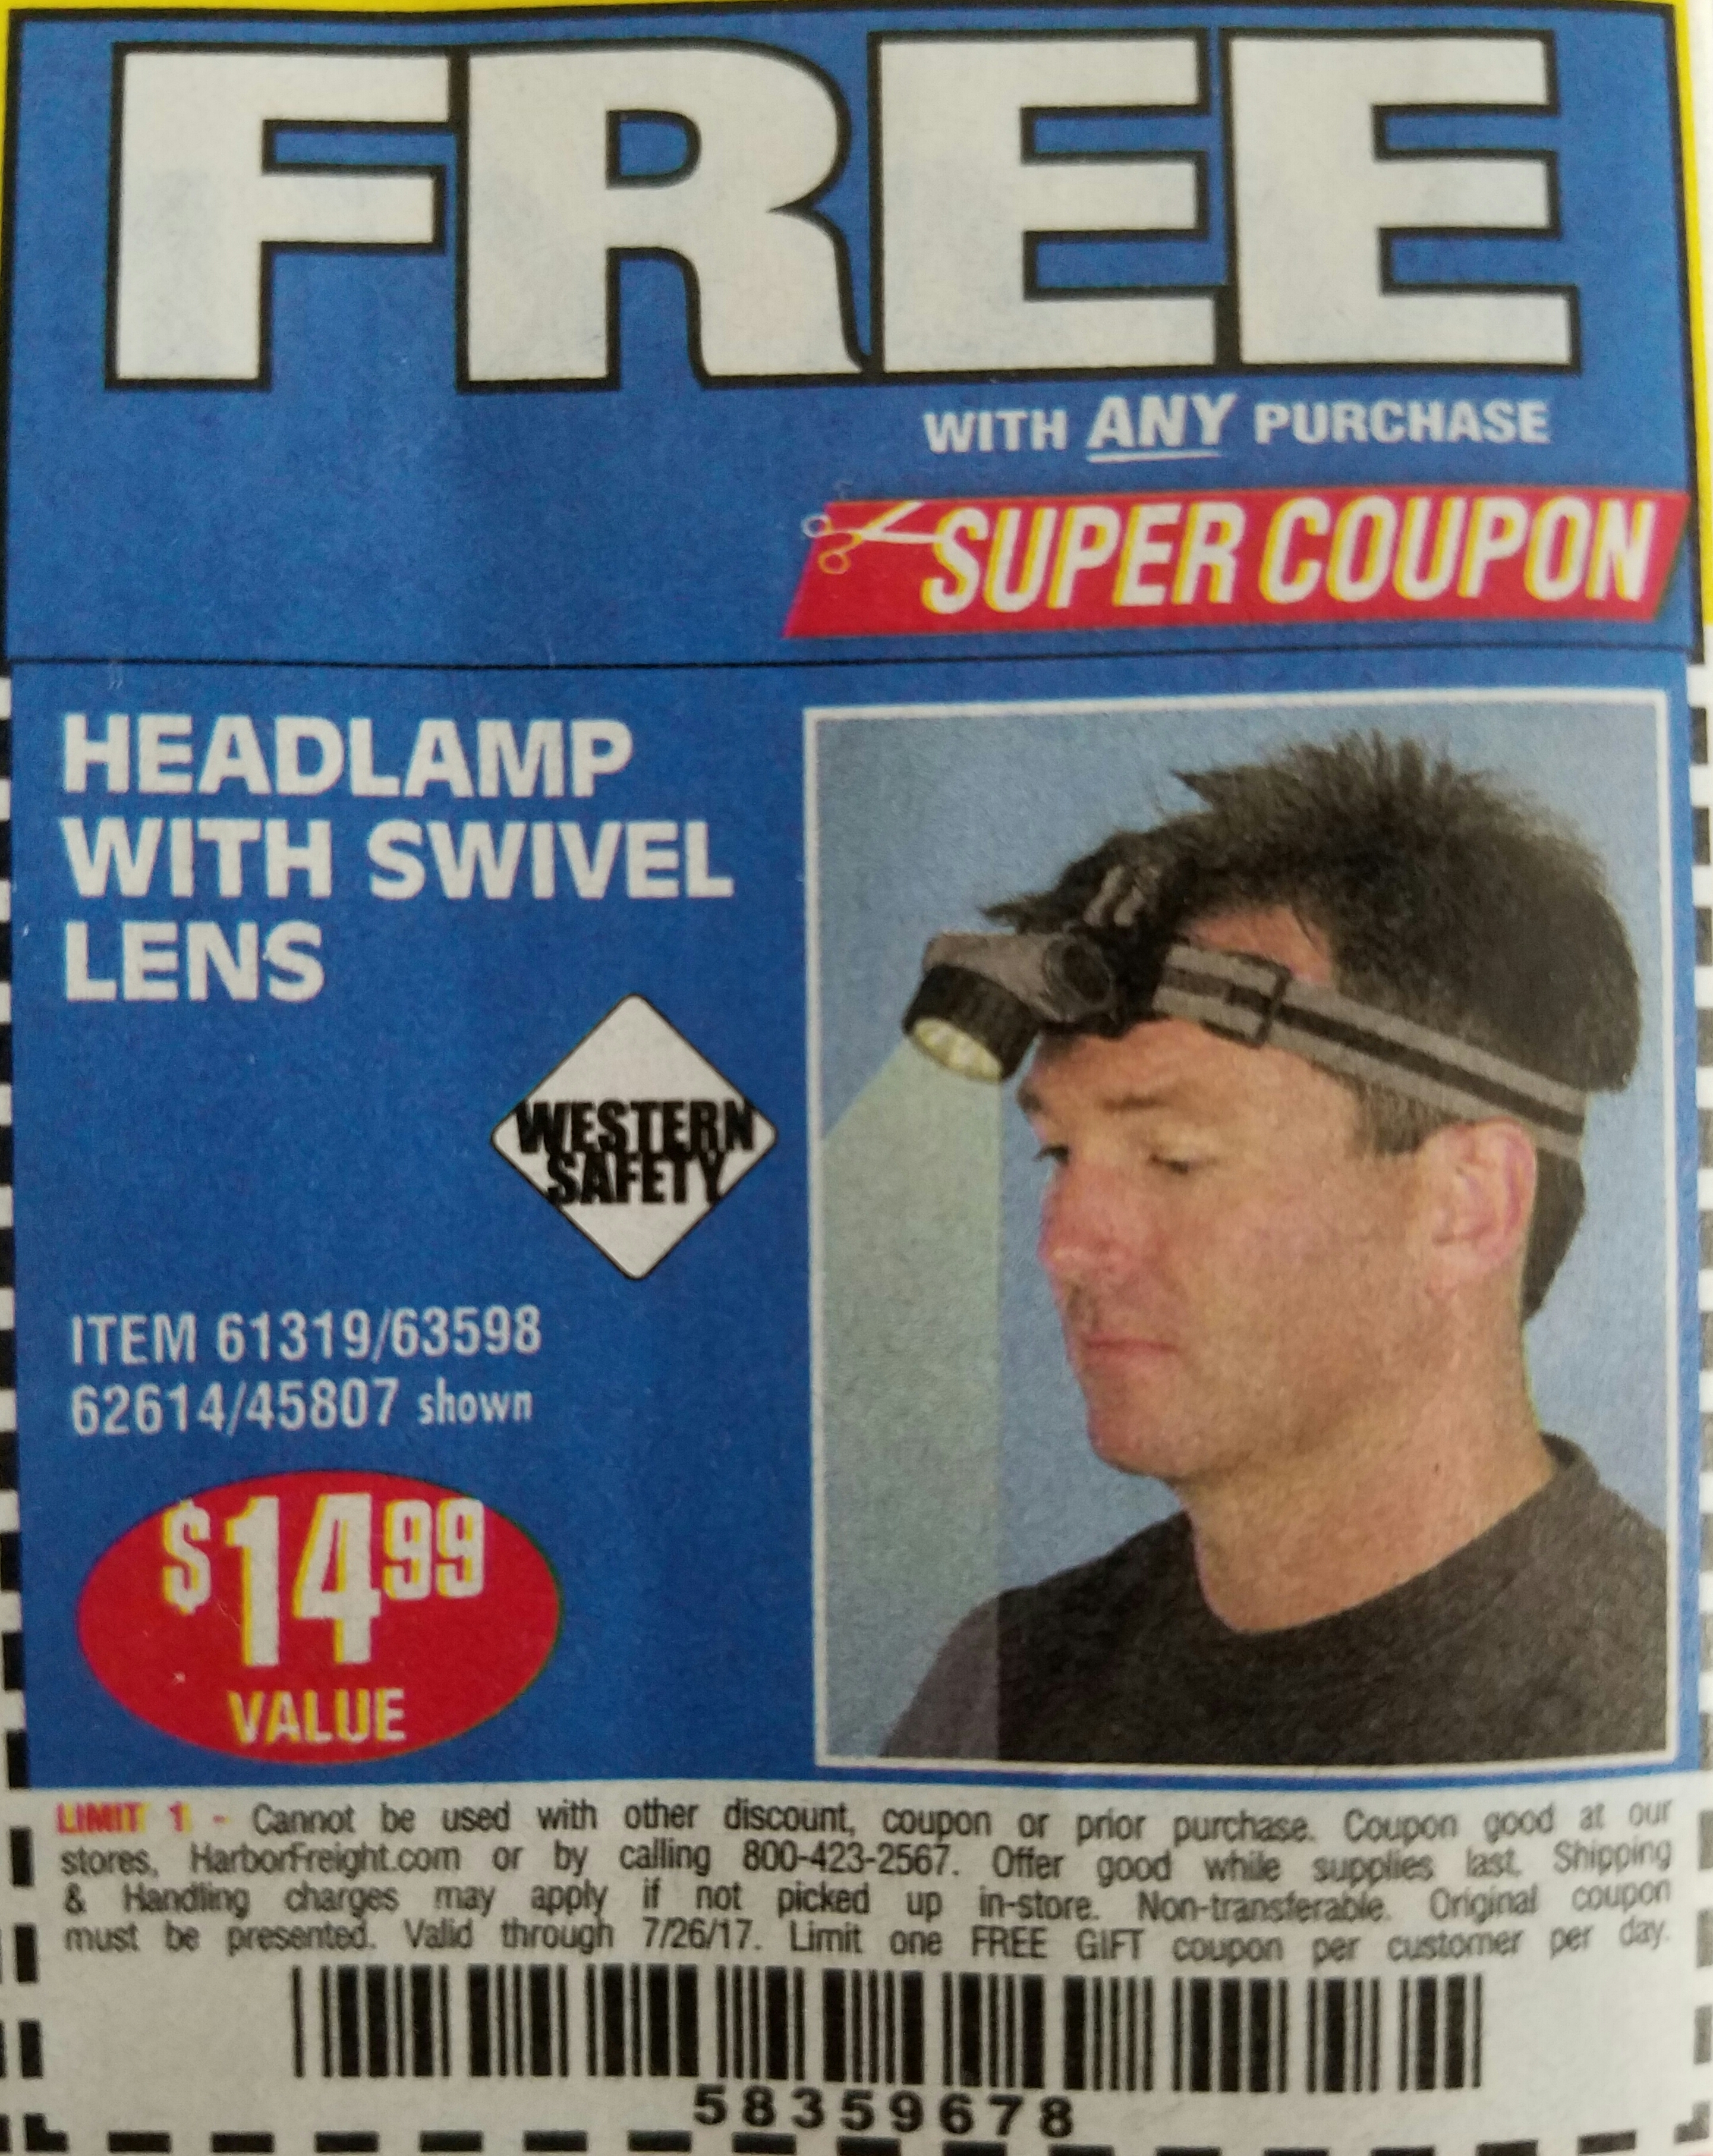 Harbor Freight HEADLAMP WITH SWIVEL LENS coupon